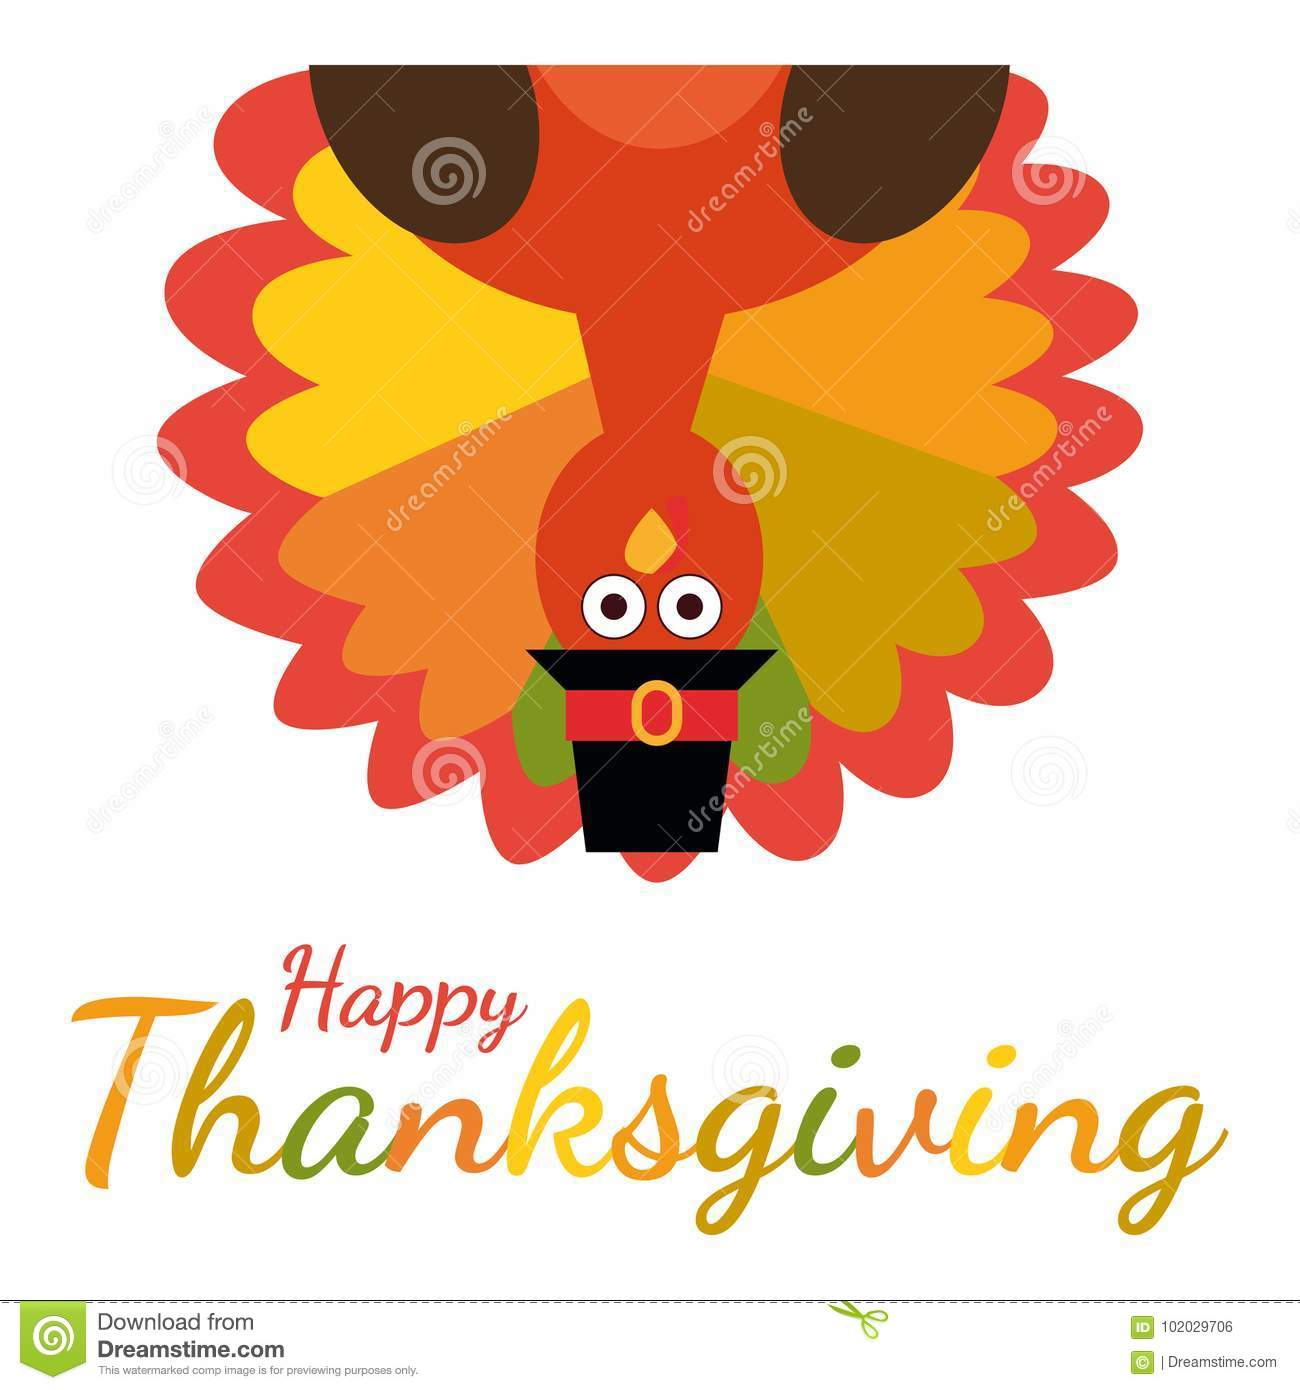 Happy Thanksgiving Greeting Card With Funny Cartoon Turkey Stock